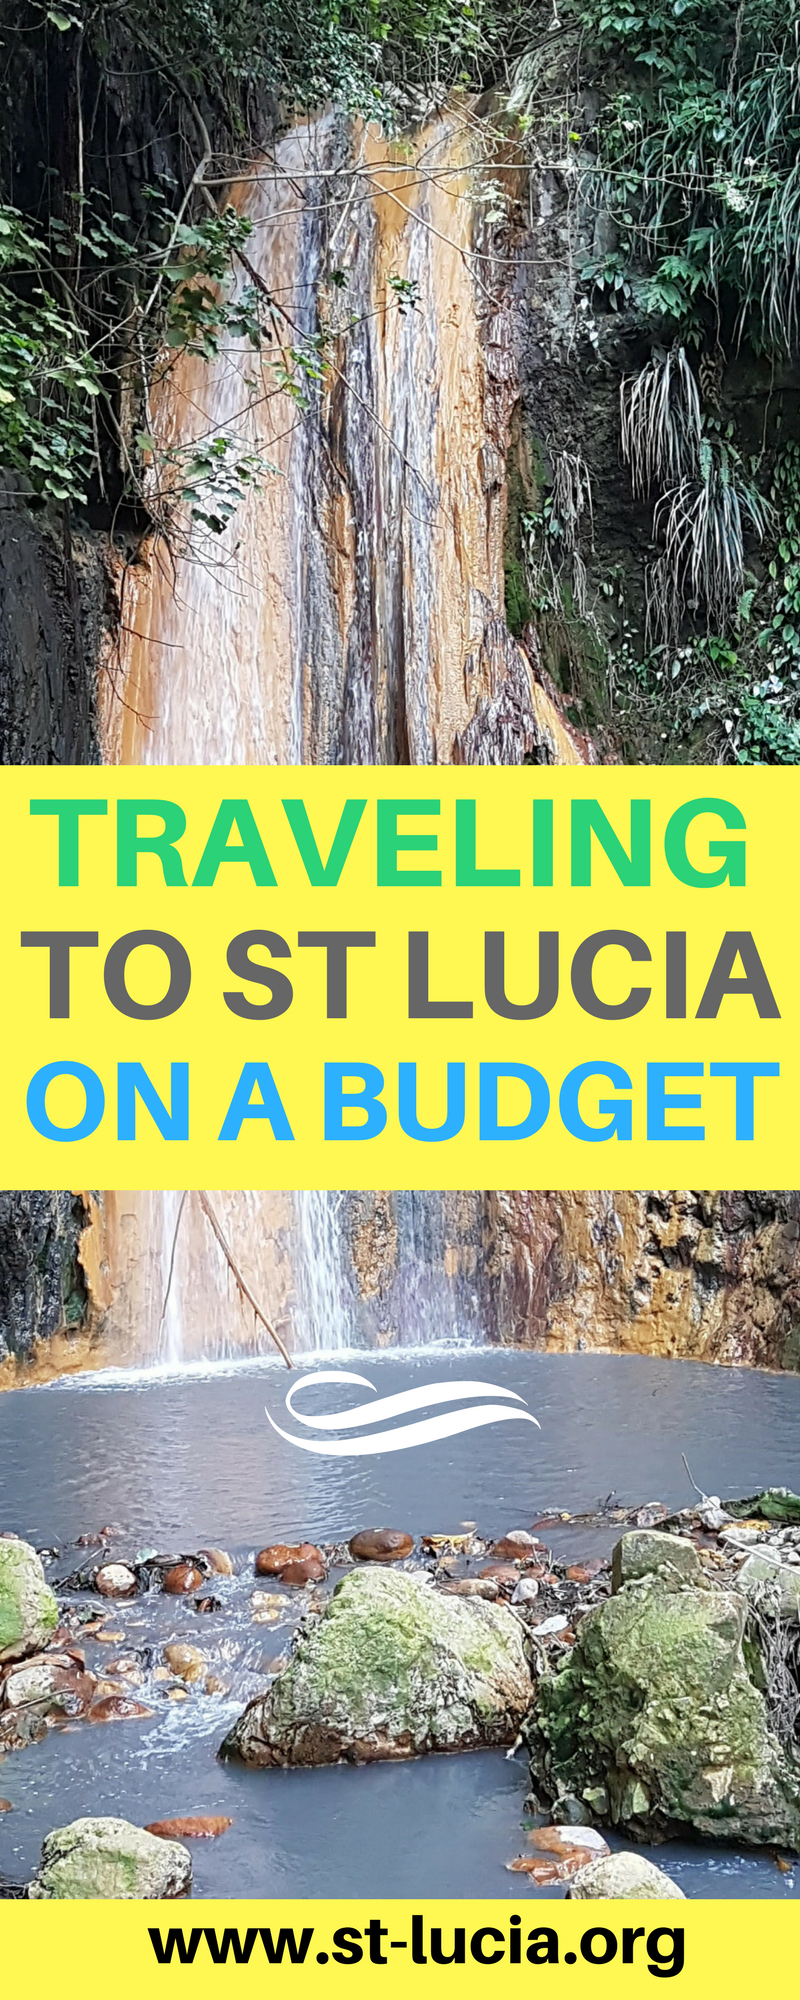 Traveling to ST Lucia on a budget